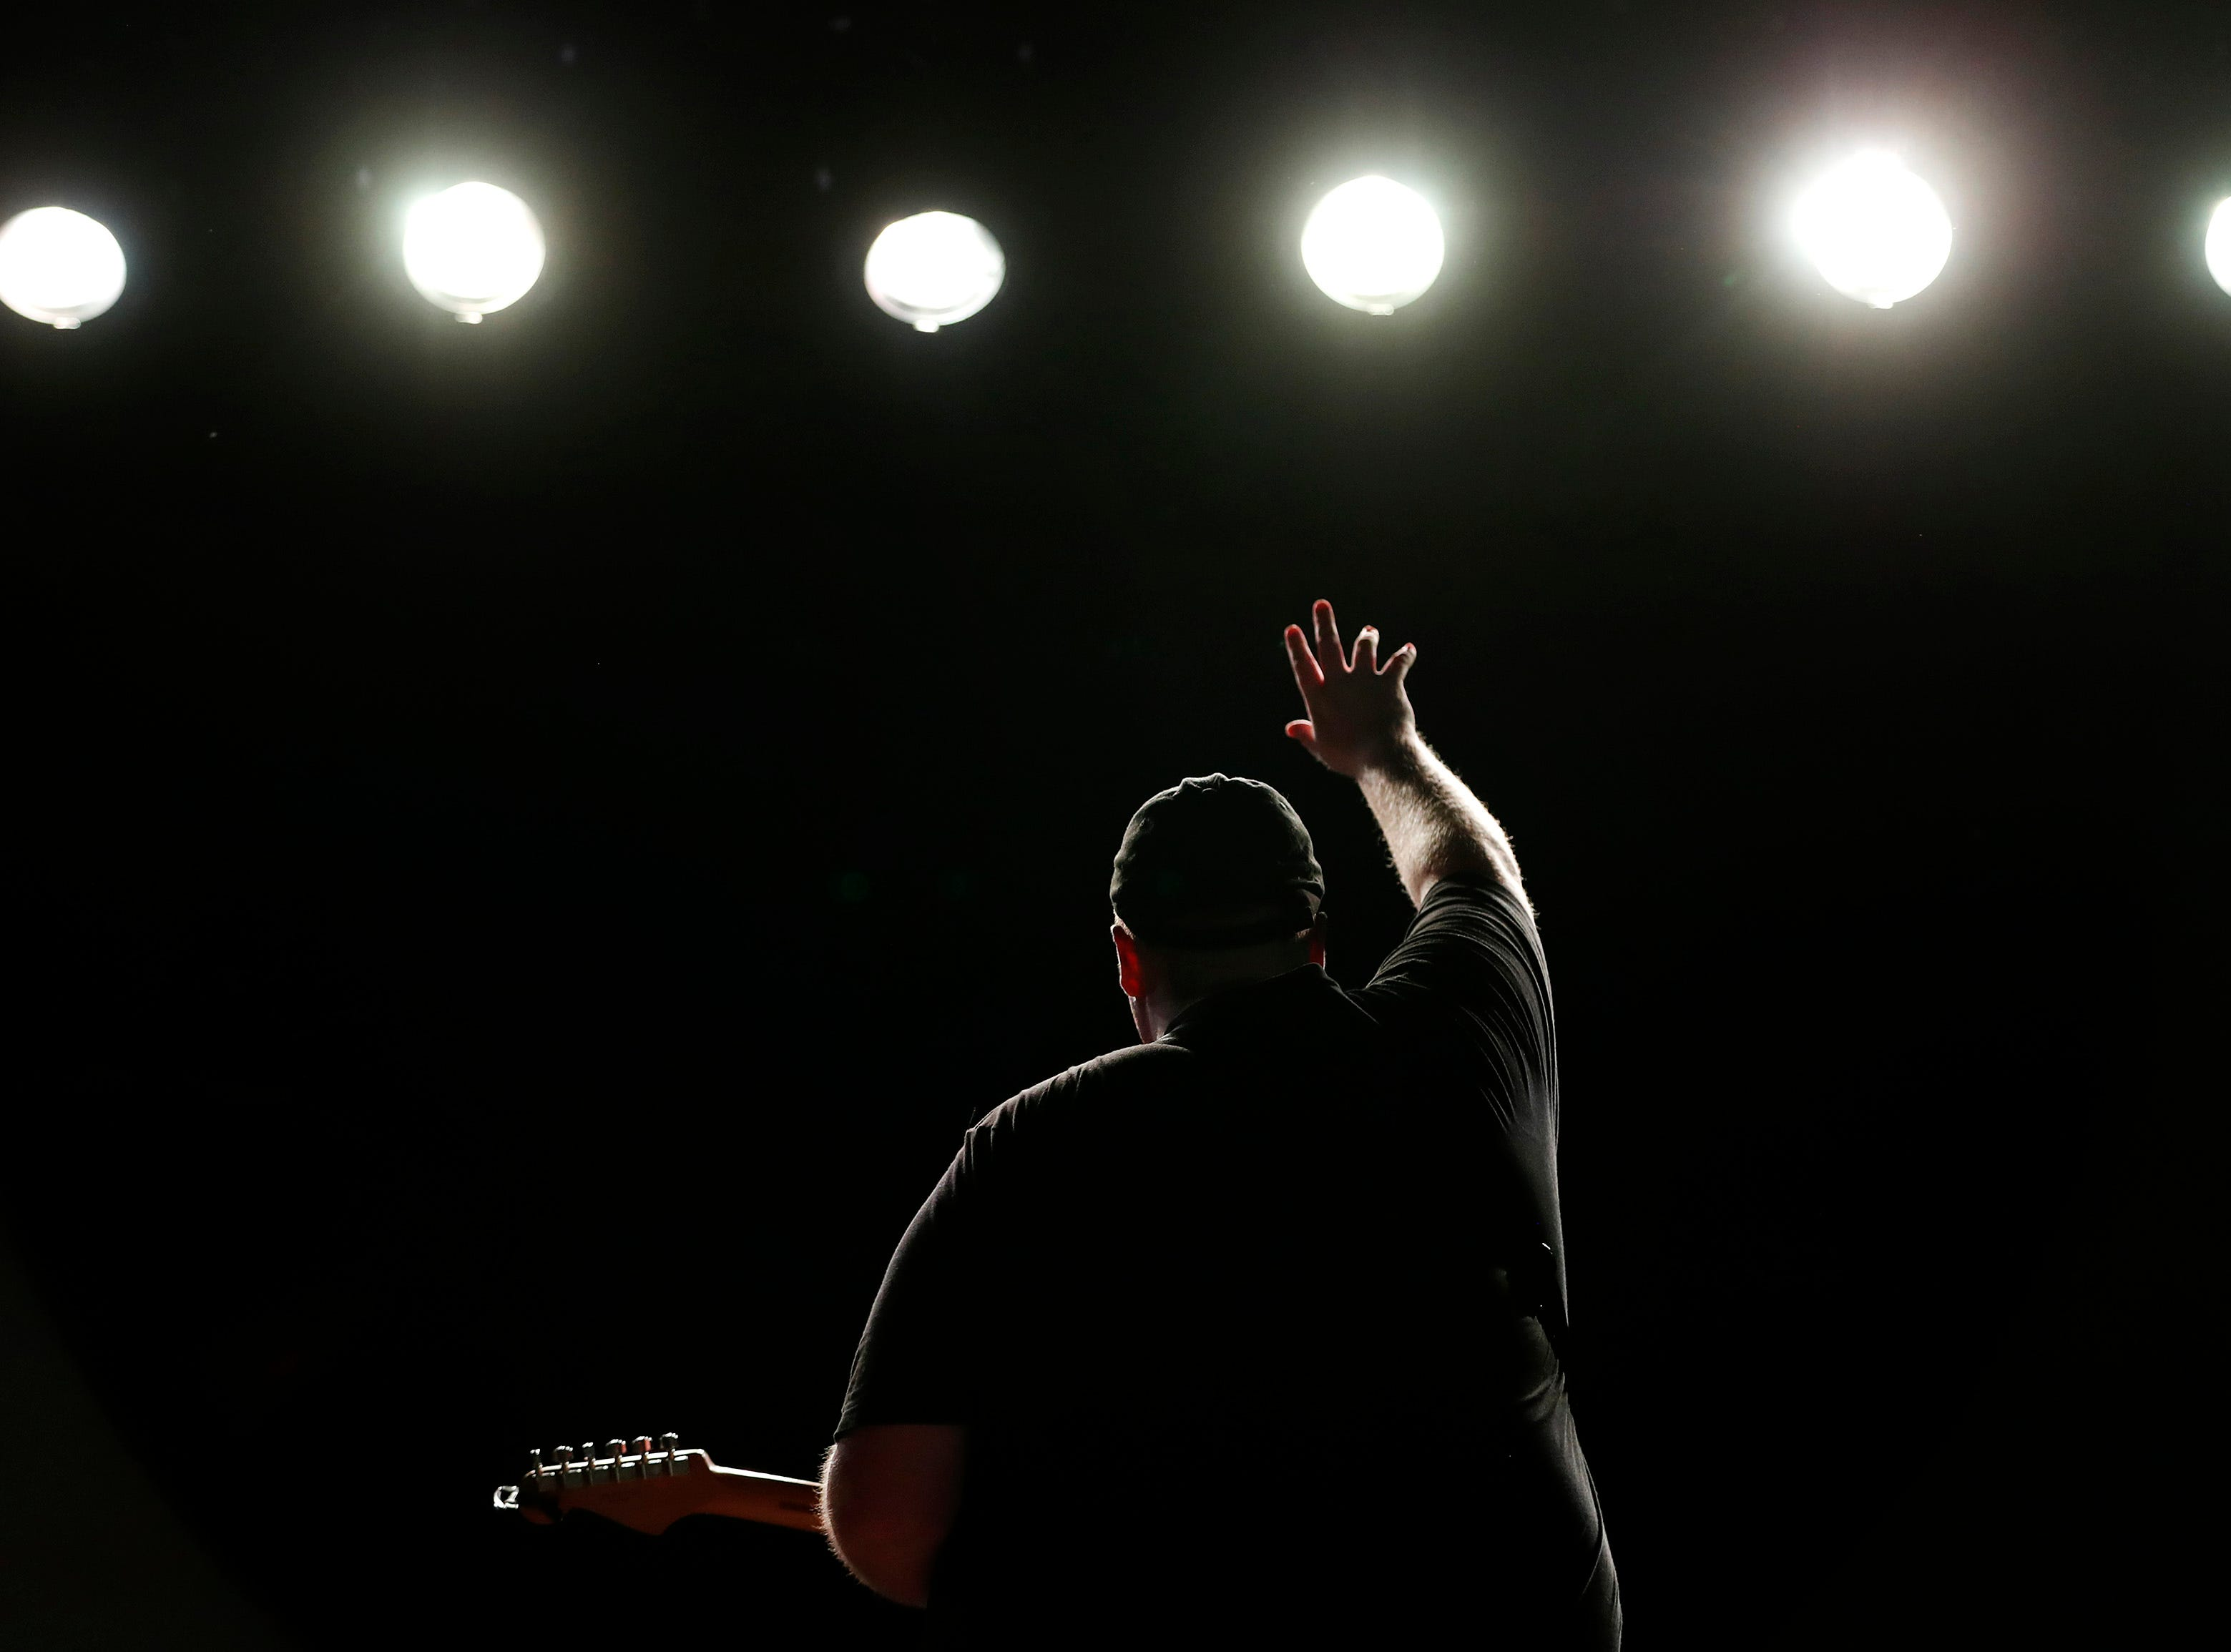 Michigander raises his hand to the crowd while performing during Bazaar After Dark Wednesday, Sept. 12, 2018, in Menasha, Wis.Danny Damiani/USA TODAY NETWORK-Wisconsin